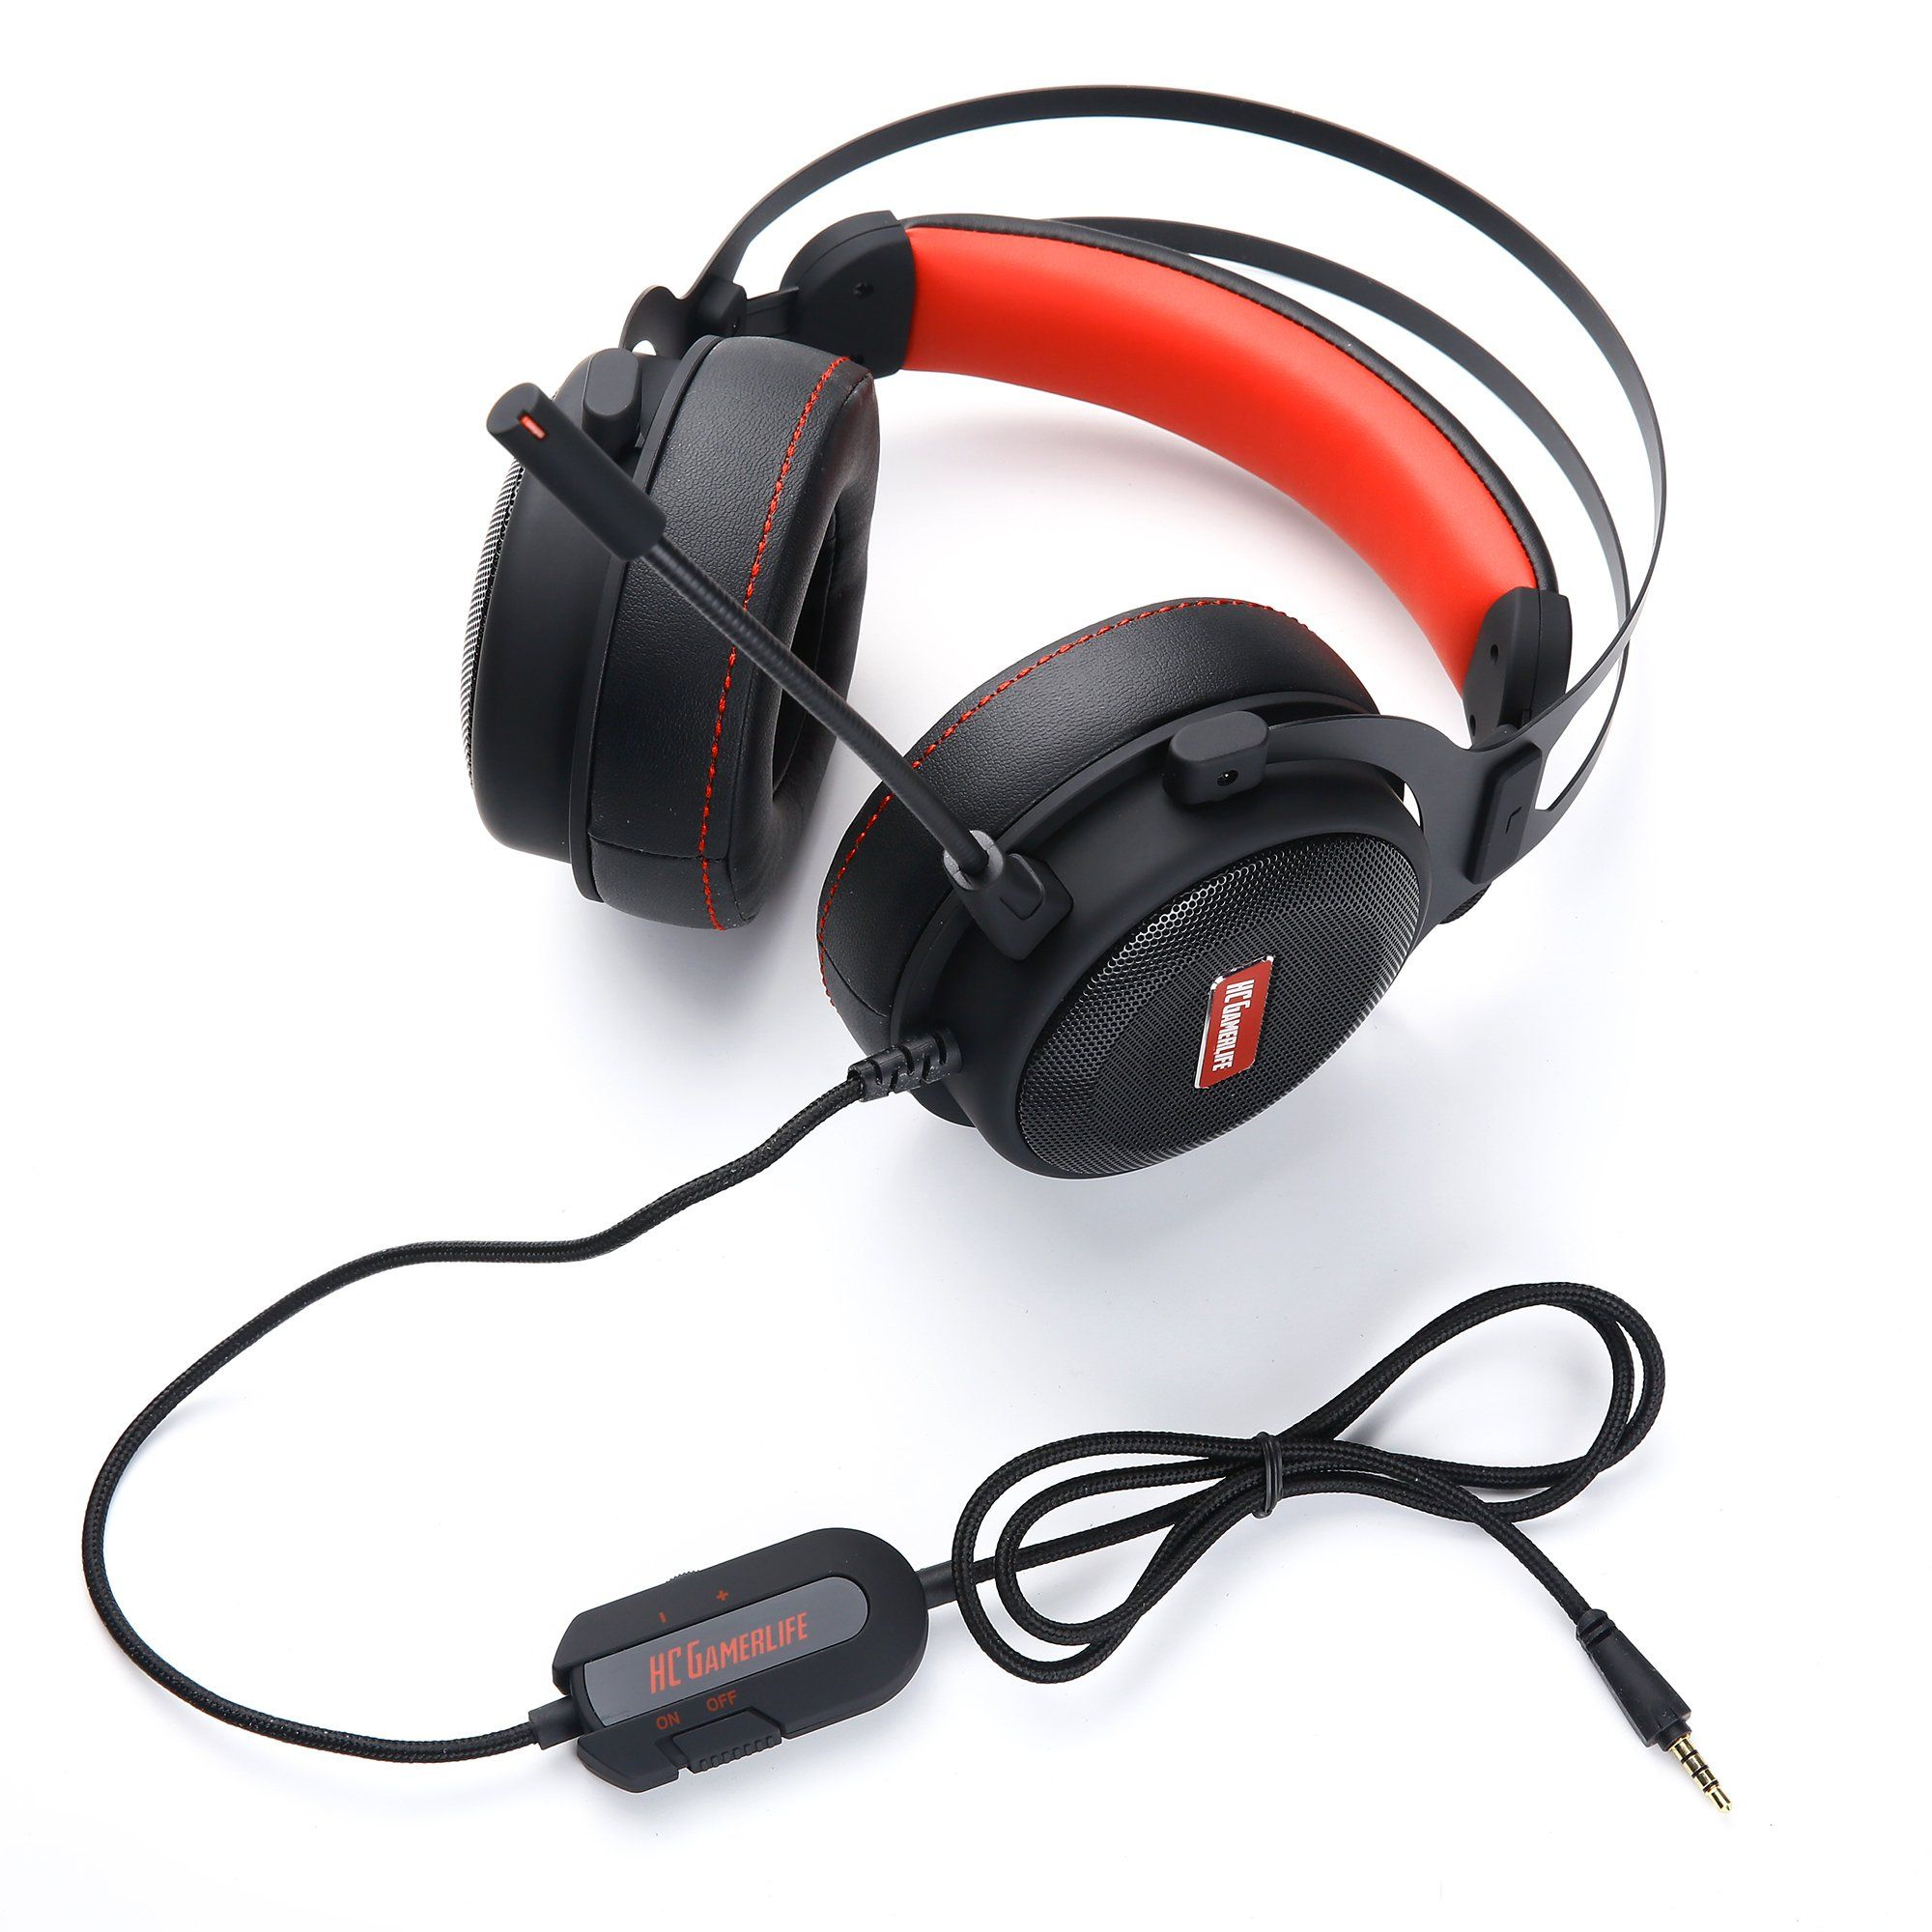 Pro Gaming Headset With Mic Universal Game Changing Premium 3d Hd Stereo Sound Video Gamer Wired Headphones For Xb Wired Headphones Headphones Gaming Headset